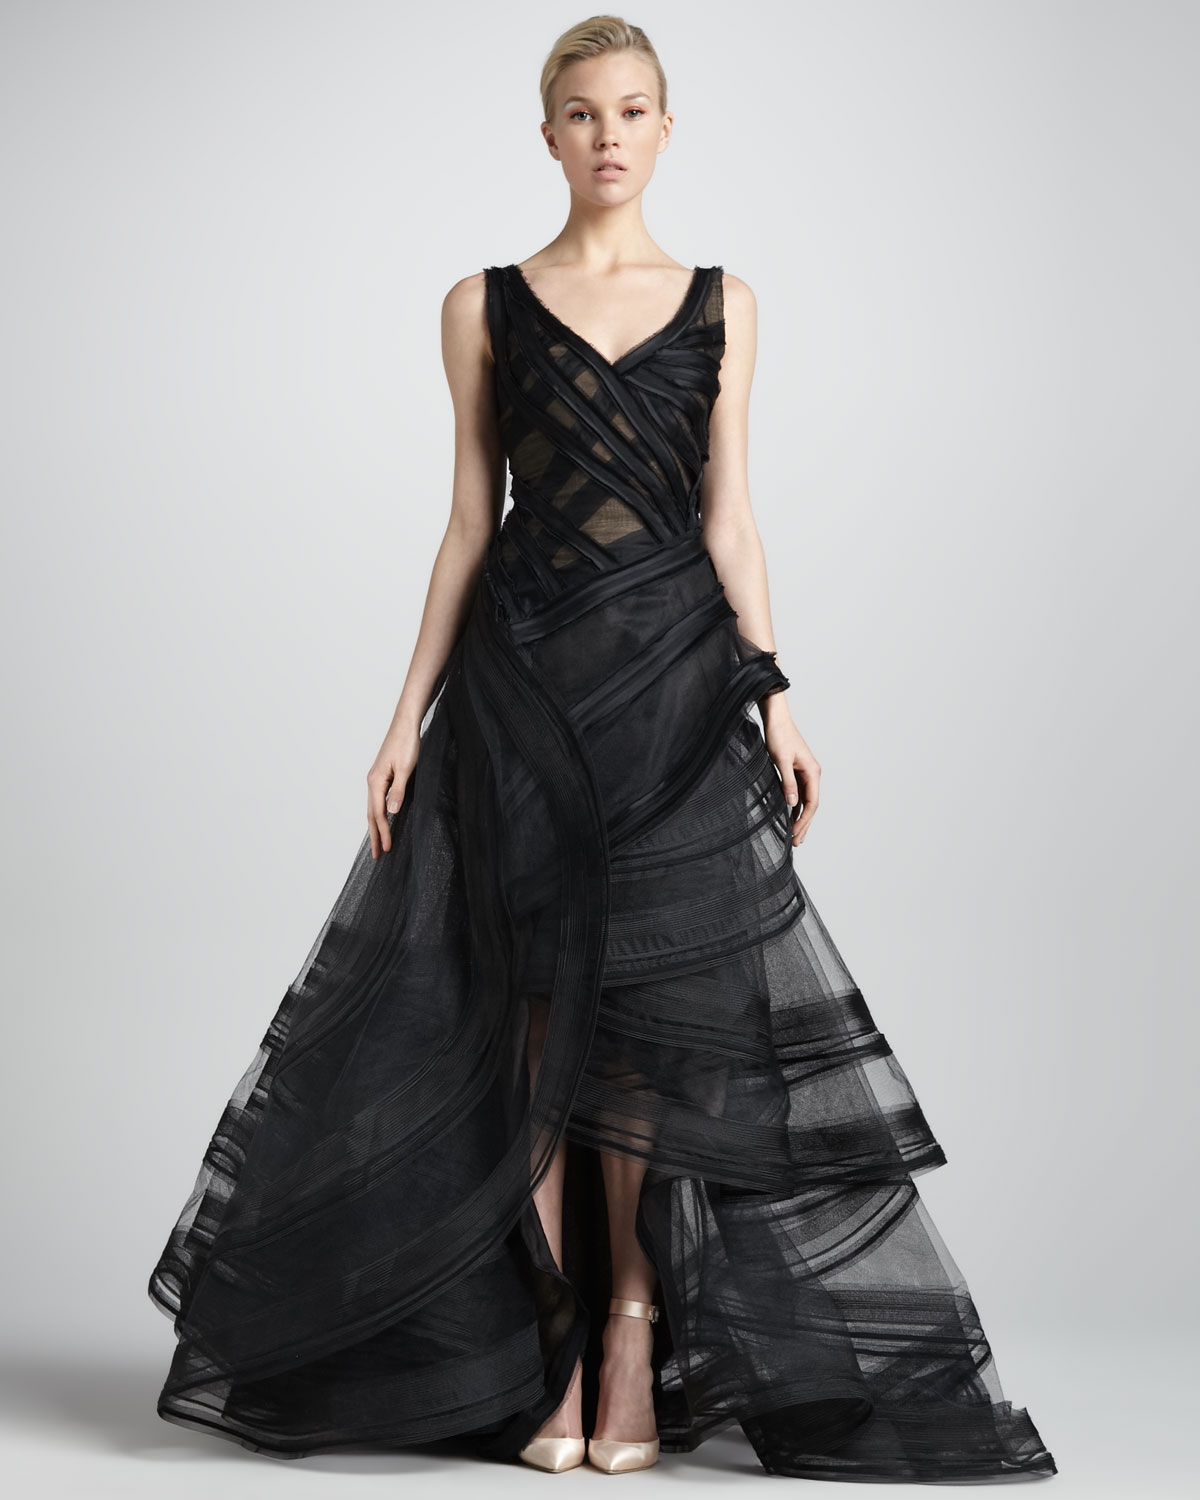 Black dress neiman marcus - Gallery Previously Sold At Neiman Marcus Women S Tiered Dresses